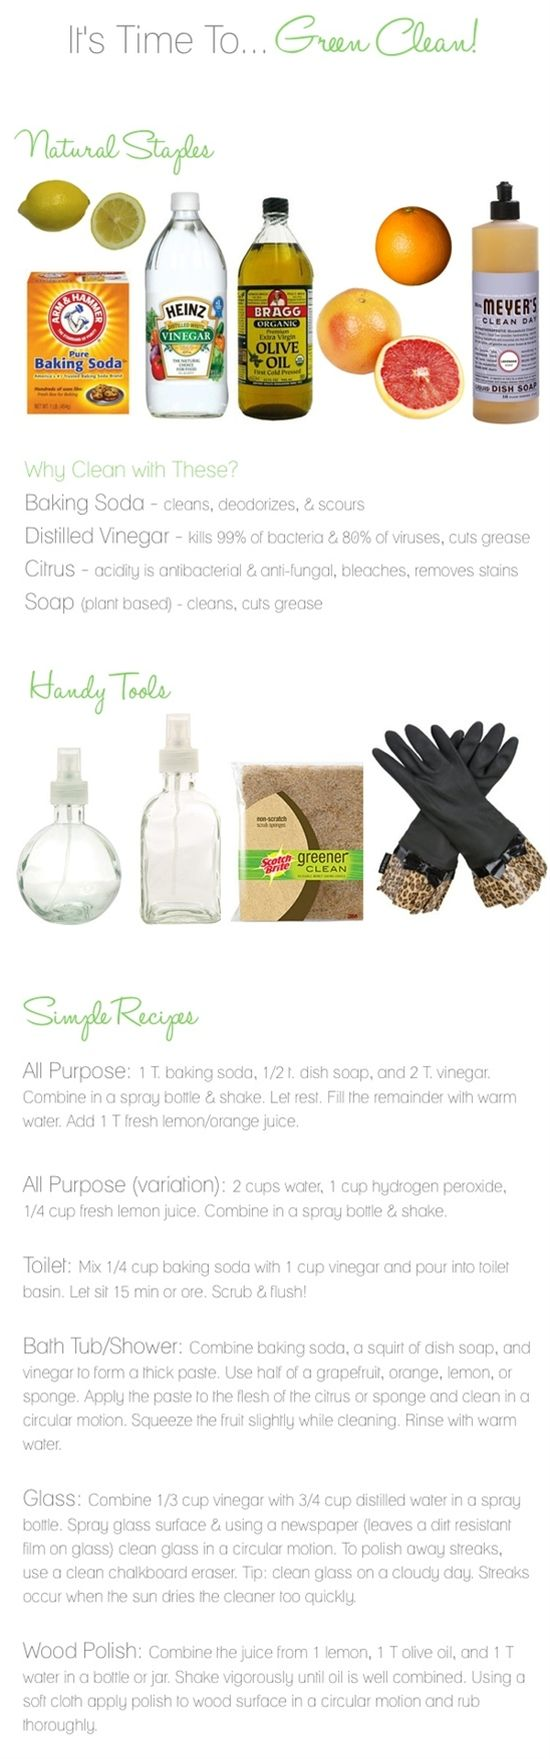 133 best Diy Handmade Green Cleaning Product and Tips for the household  images on Pinterest. 133 best Diy Handmade Green Cleaning Product and Tips for the